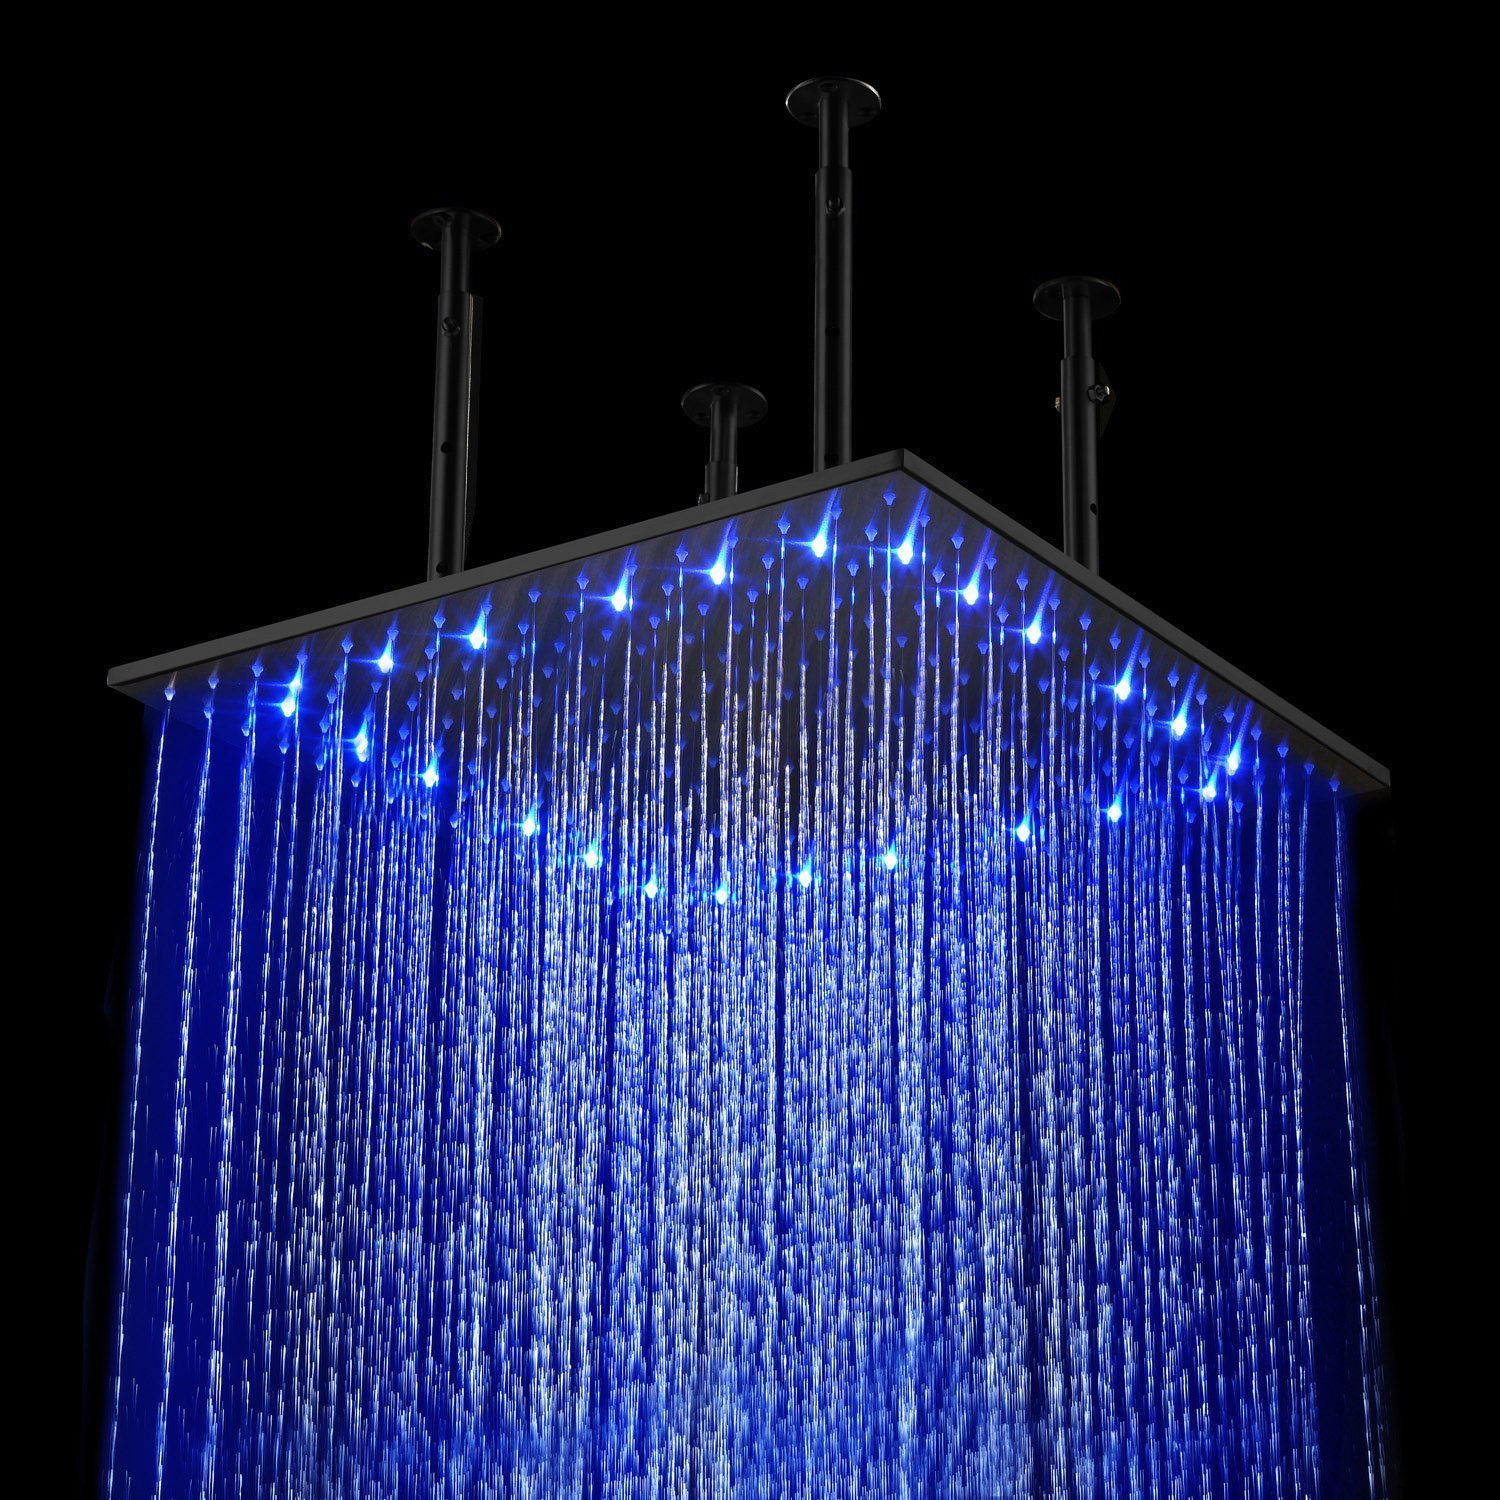 BathSelect Oil Rubbed Bronze Square Color Changing LED Rain Shower Head